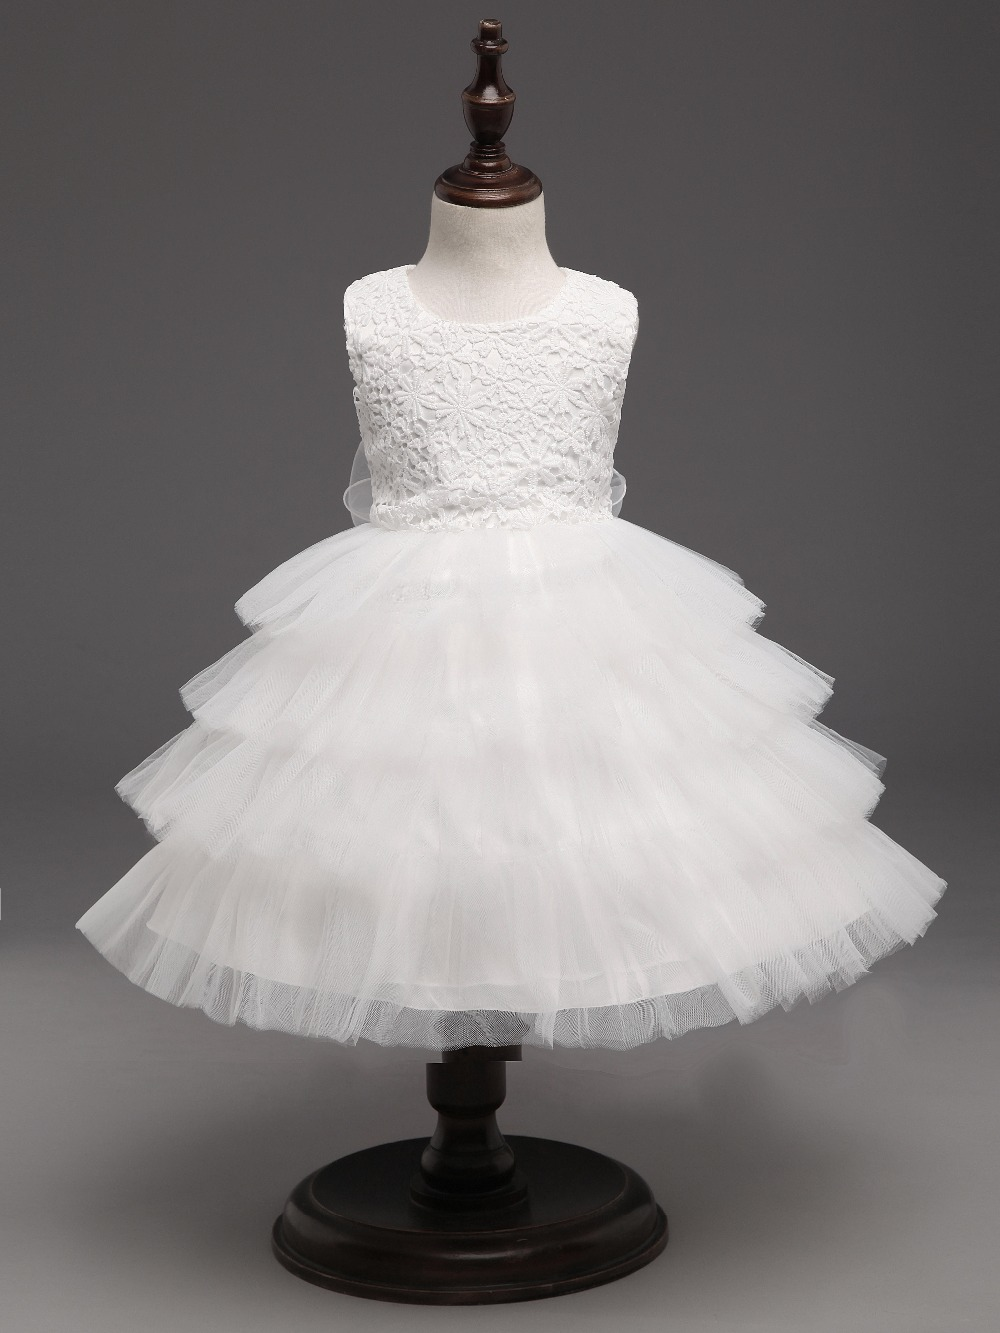 White Wedding Baby Girl Princess Dress Baptism Toddler Kids Dresses For Girls Clothes children clothing Party tutu dress girl pink kids baby girls party dresses lace princess dress for baptism wedding children clothing girl tulle tutu dress 2 6 years